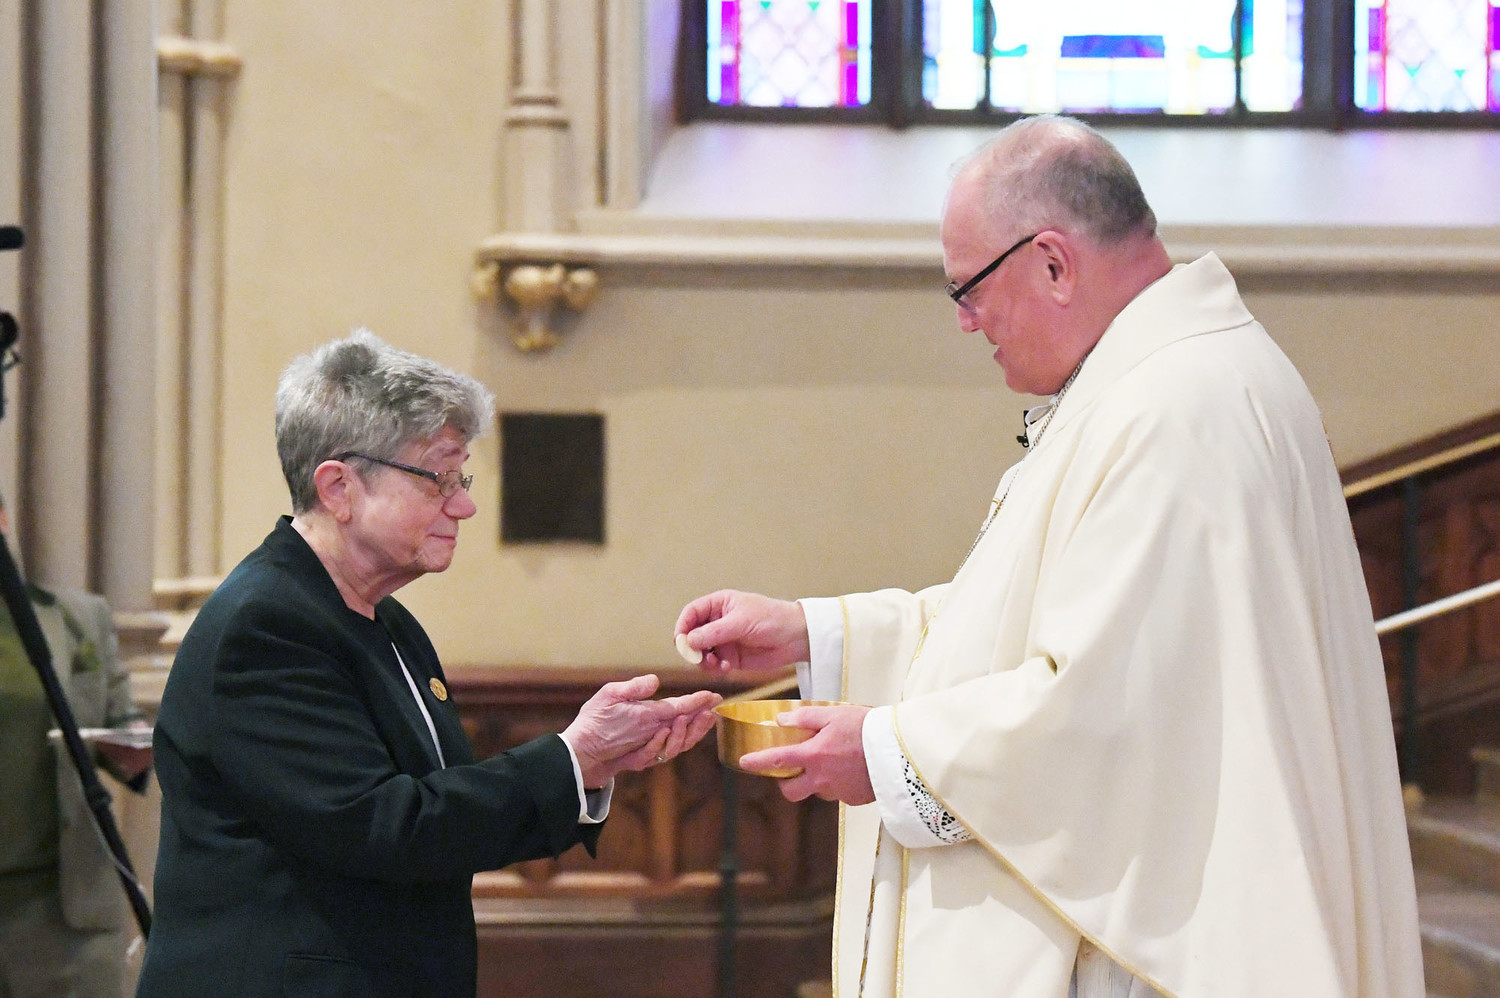 Sister Jane Iannucelli, S.C., president of the Sisters of Charity of New York, receives Communion from Cardinal Dolan.